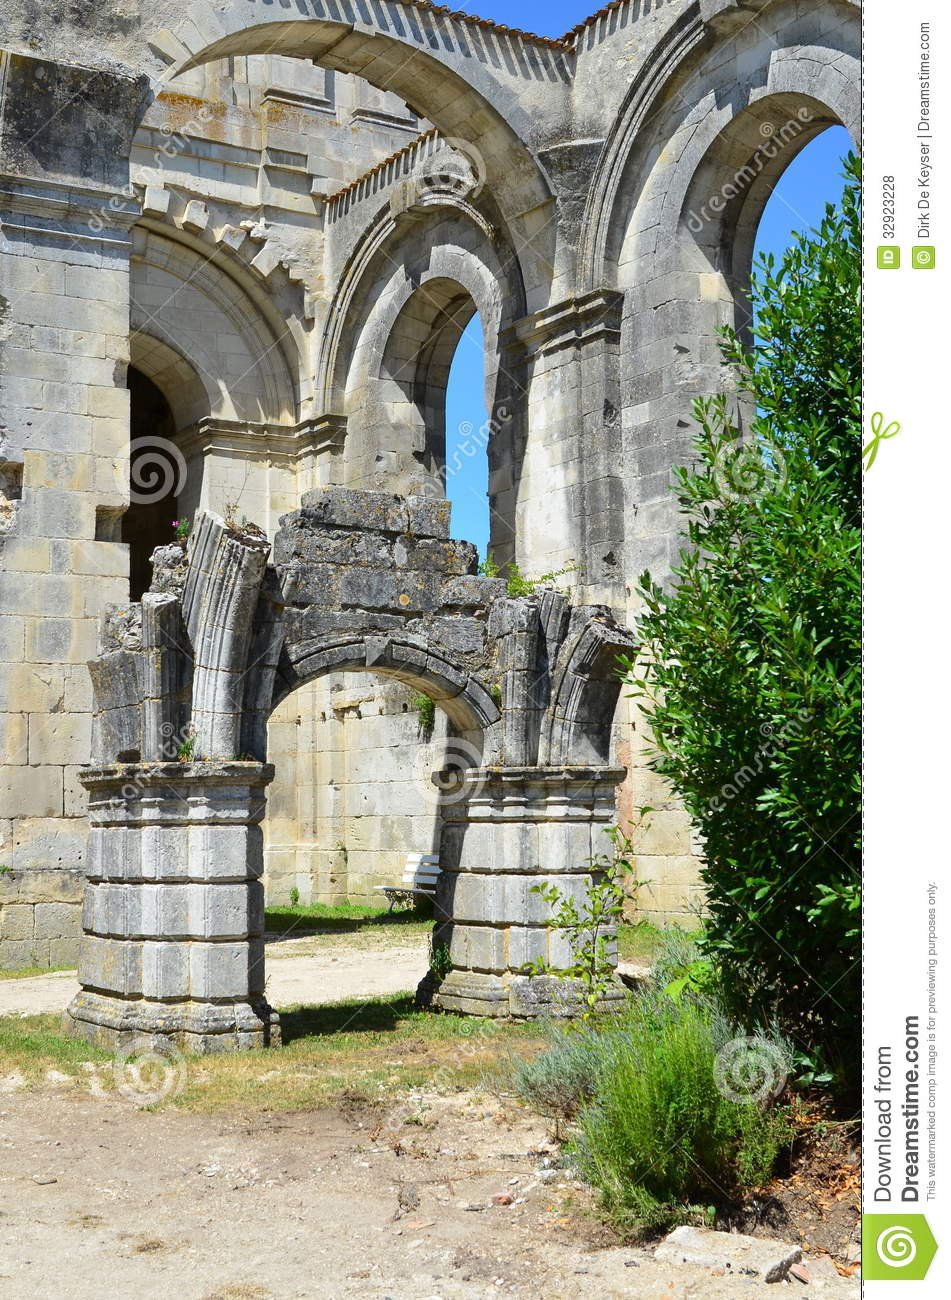 ruins arround royal abbey in saint jean d 39 angely france royalty free stock photos image 32923228. Black Bedroom Furniture Sets. Home Design Ideas